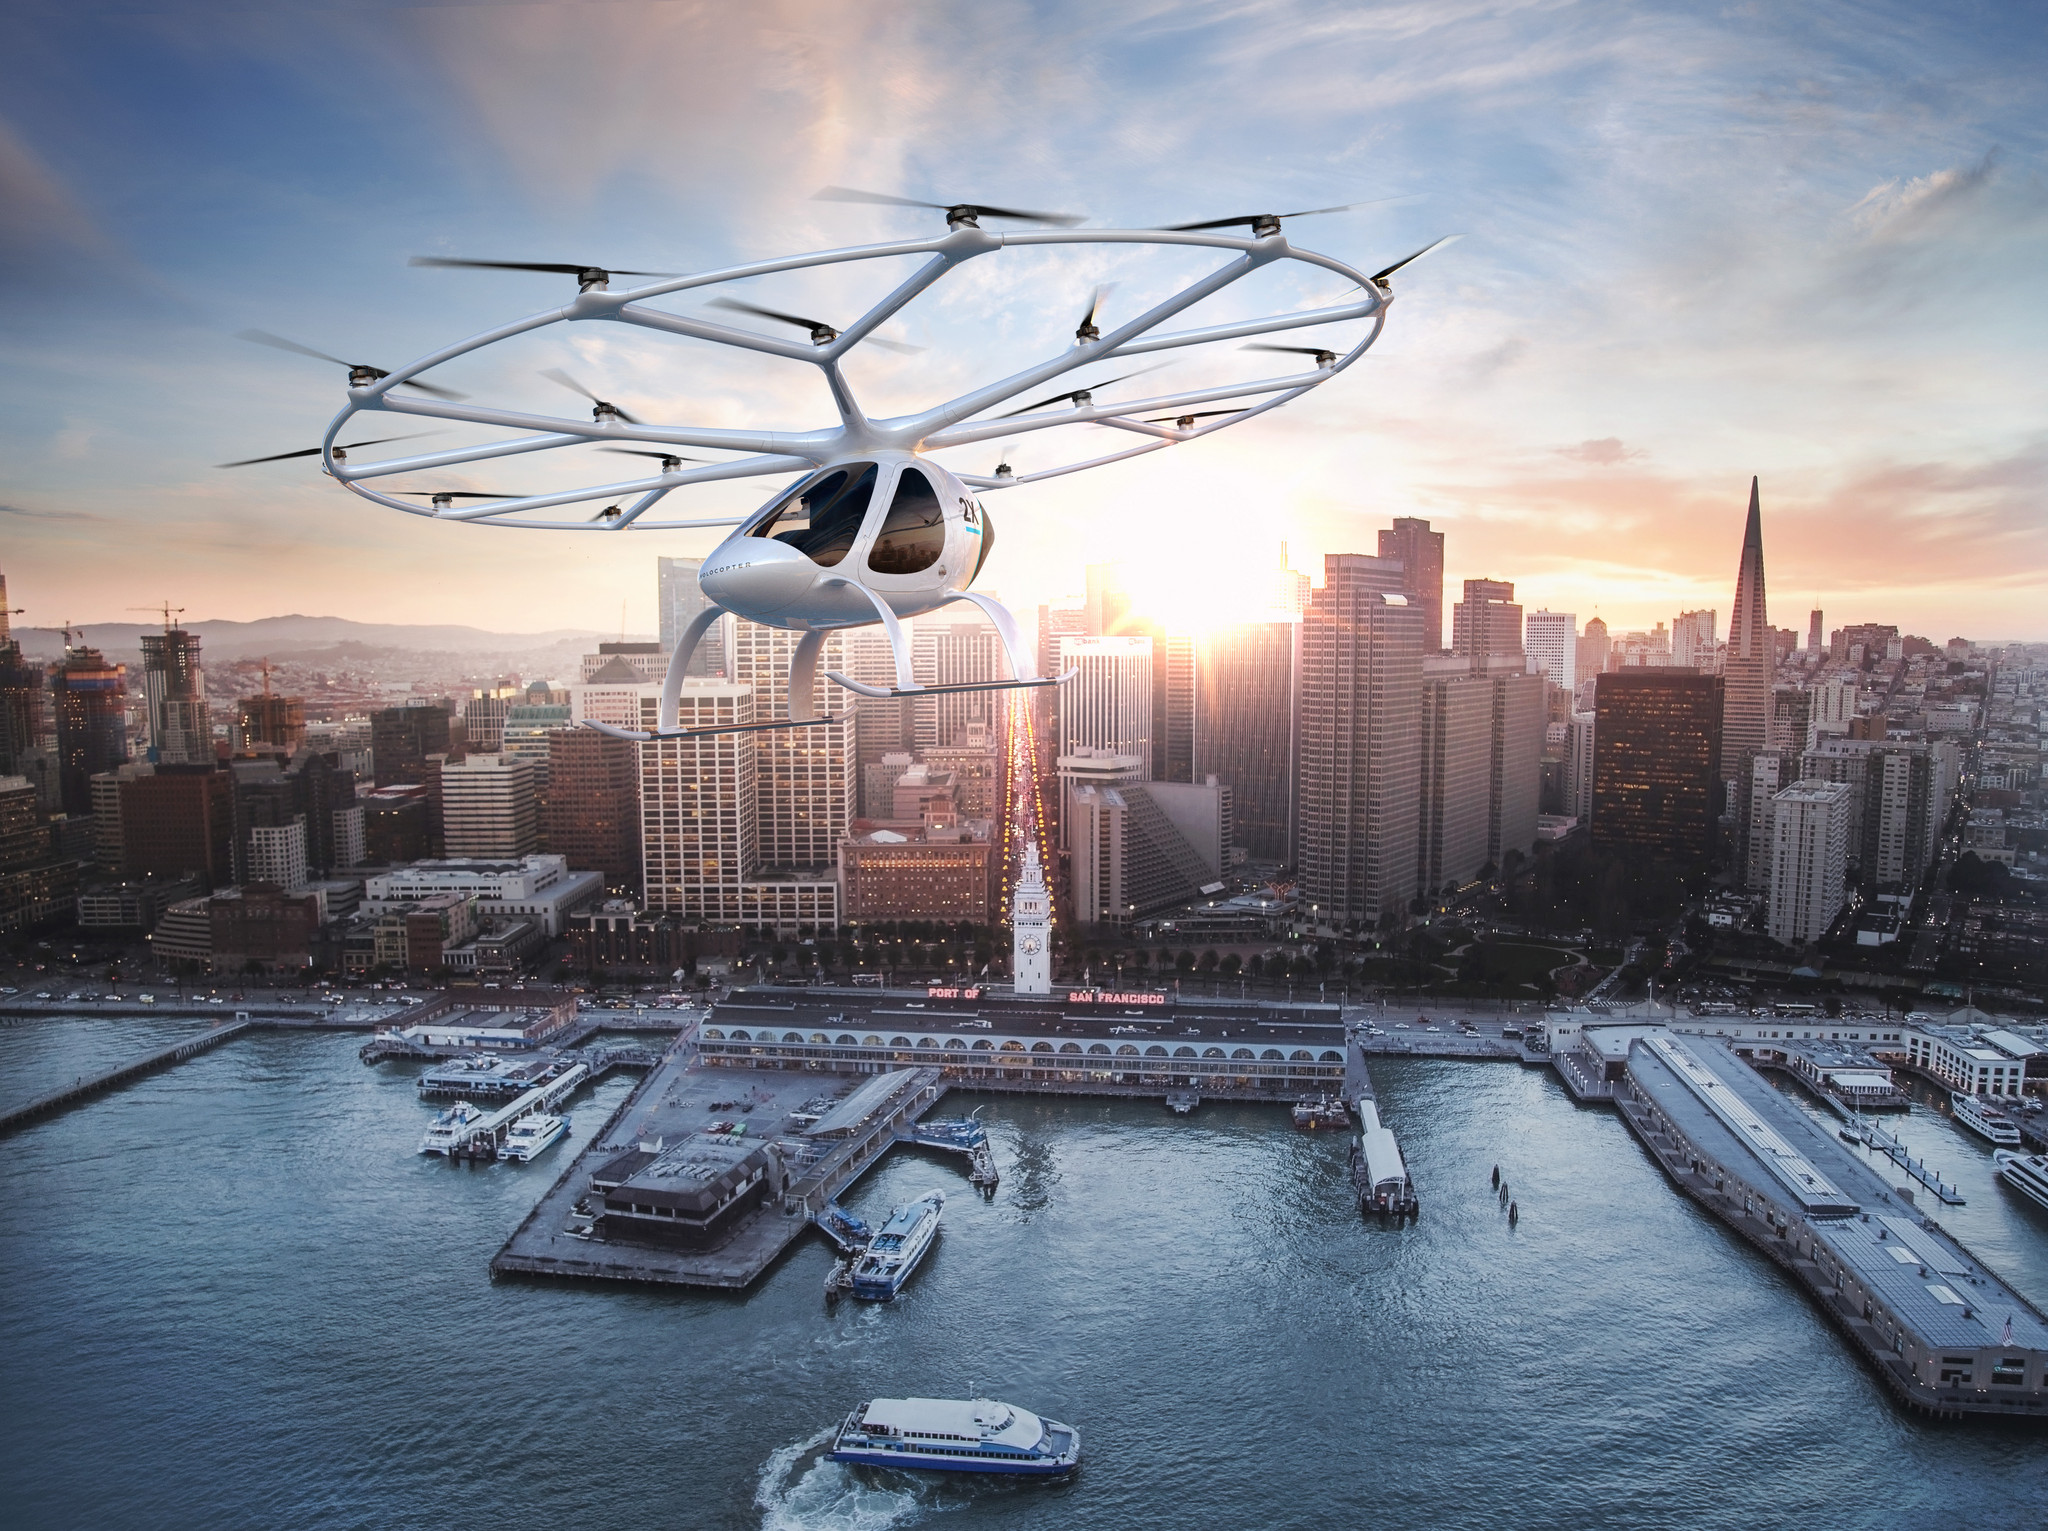 volocopter-2x-outbound.jpg